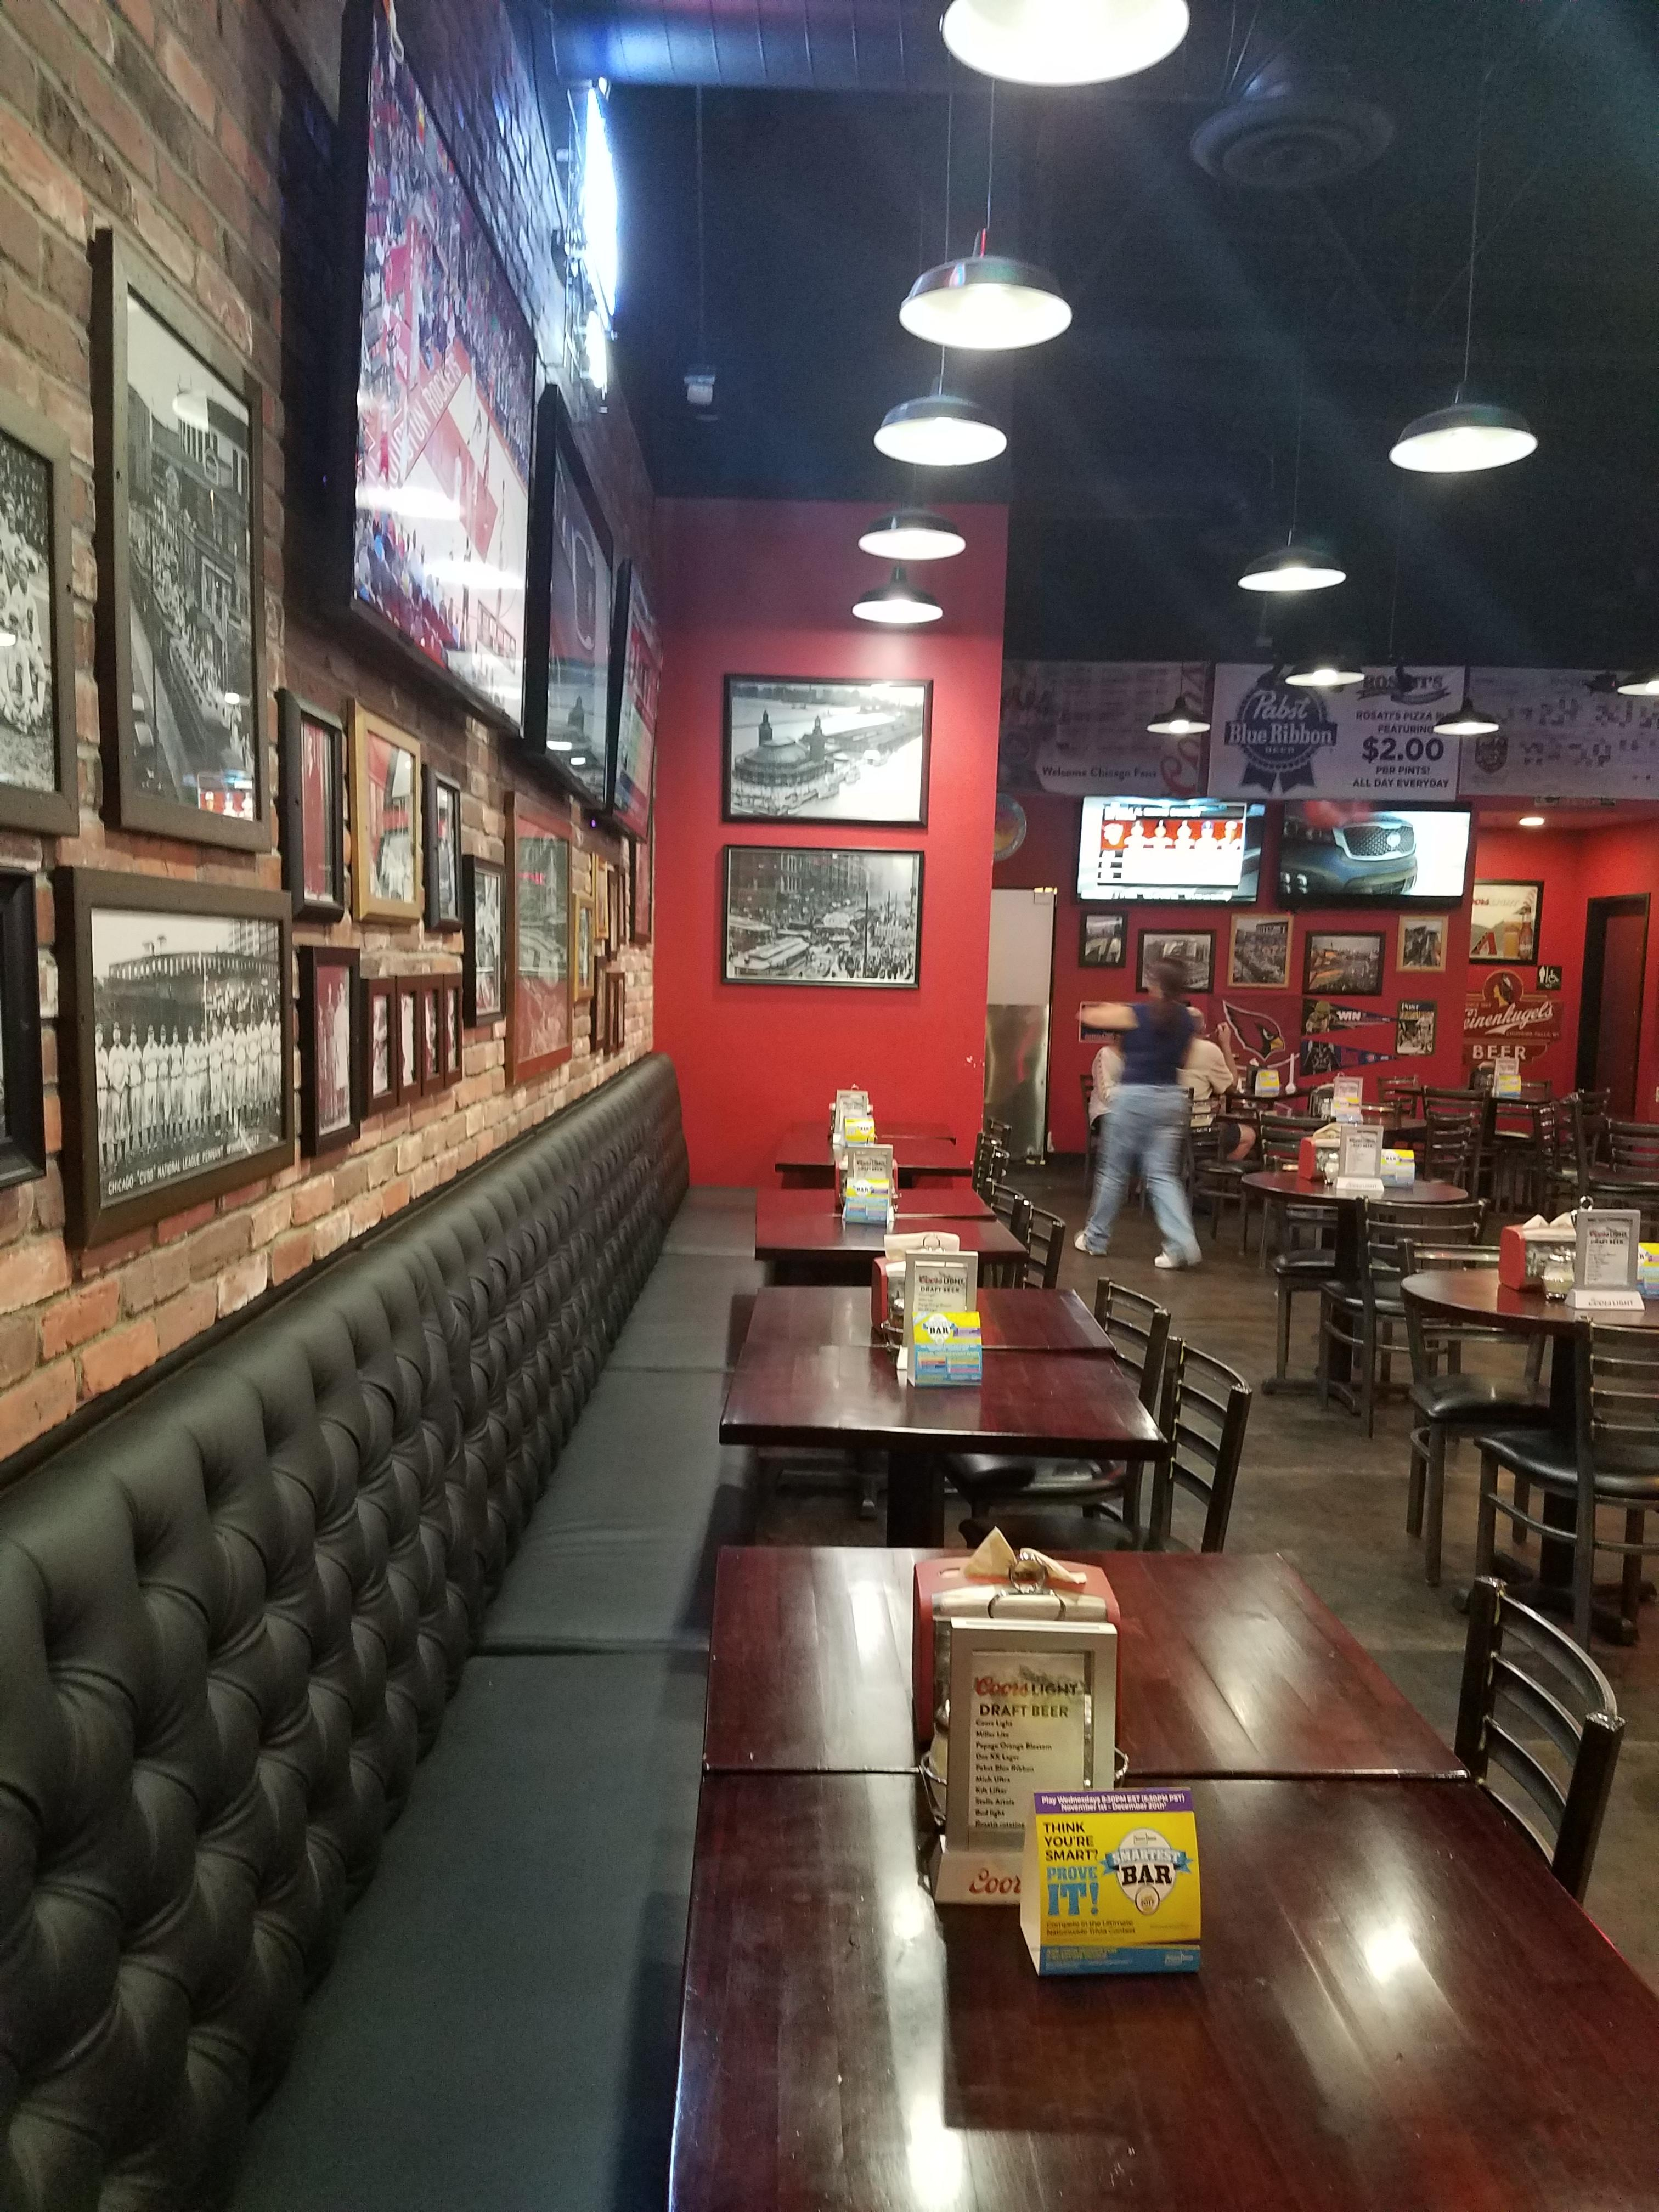 Rosatis pizza and sports bar image 3